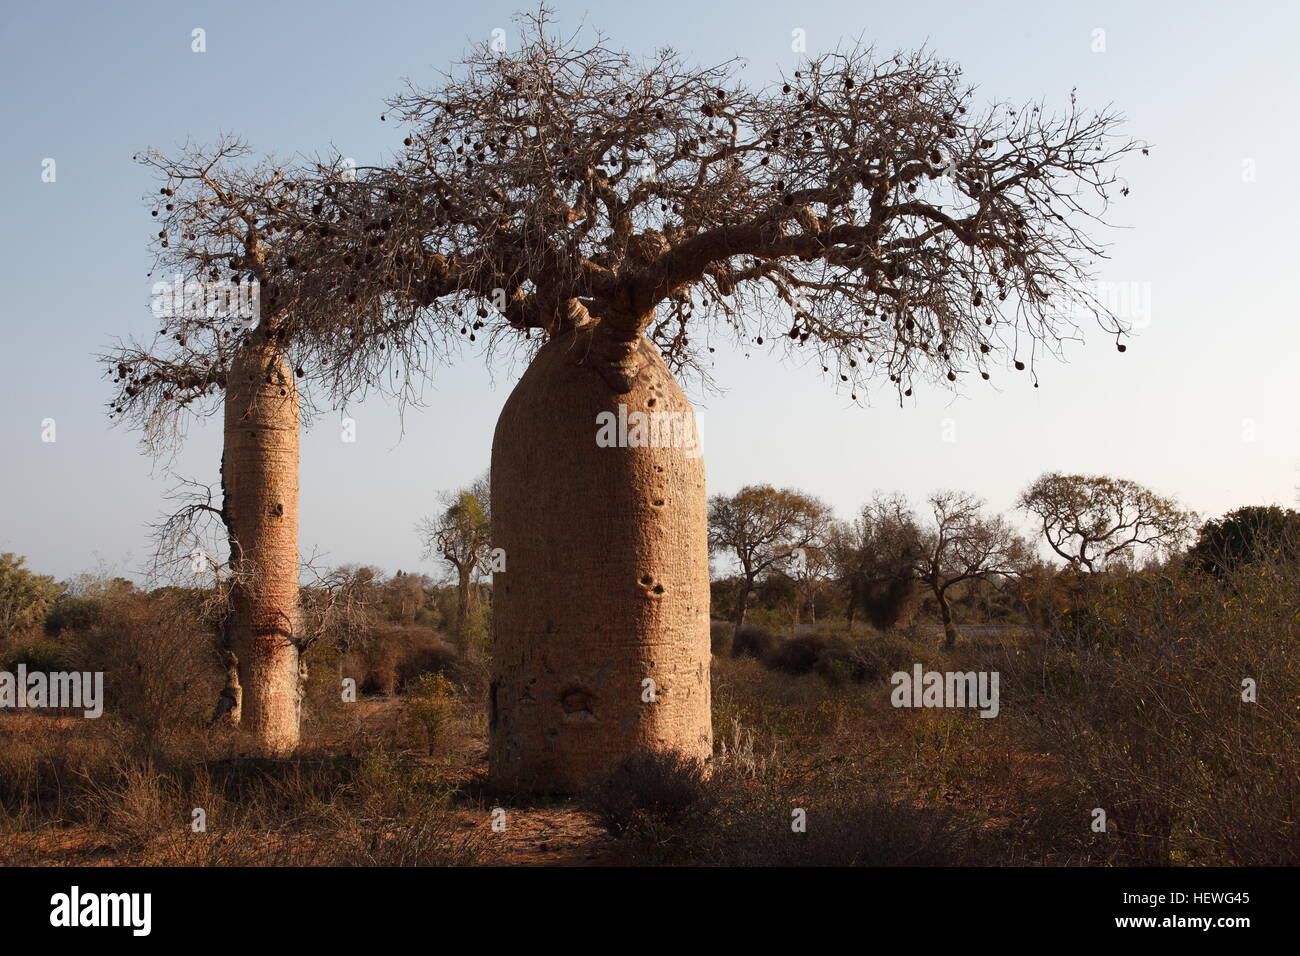 Andansonia Rubrostipa Baobab trees inland from Ifaty, north of Tulear - Stock Image